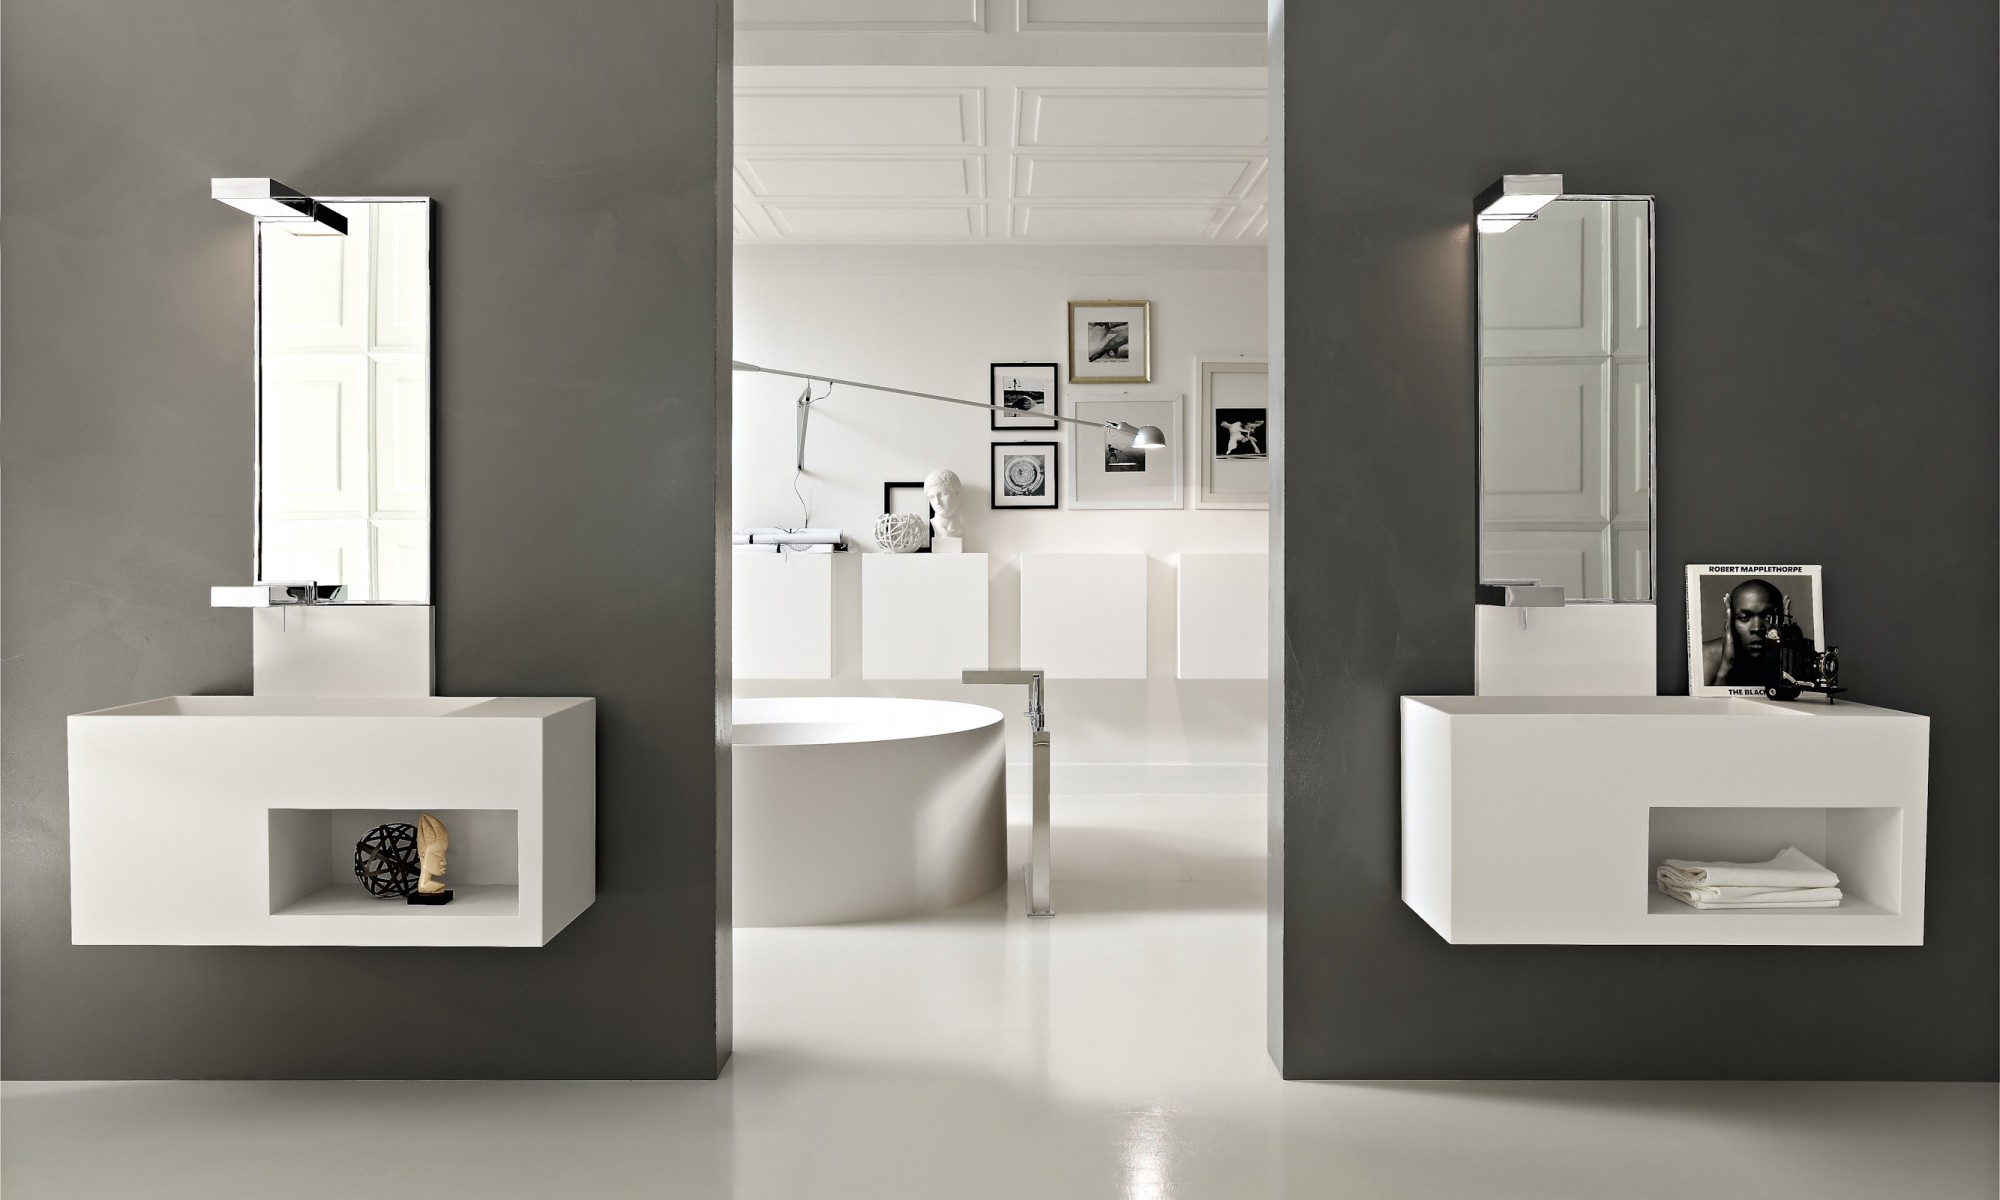 Vanity Designs Extraordinary Contemporary Bathroom Vanity Designs Small Vanities Ideas With 18 Inspiration Design